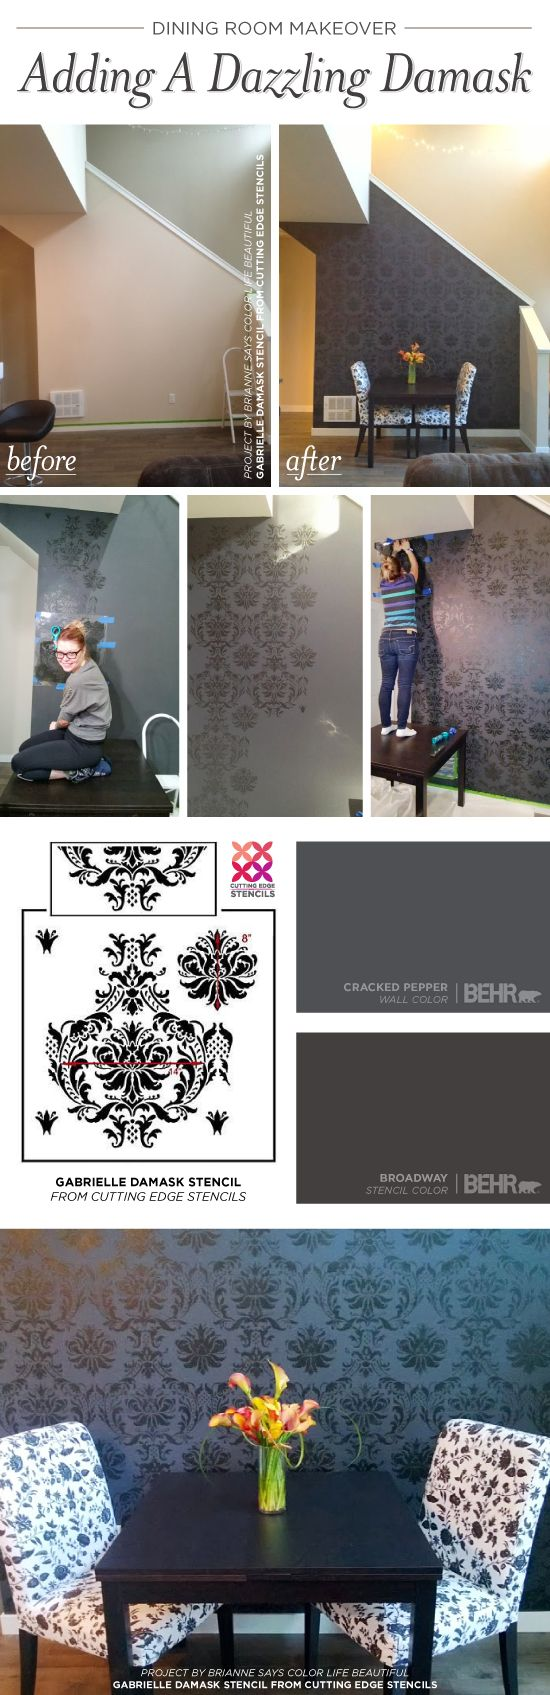 Cutting Edge Stencils shares a DIY stenciled dining room idea using the Gabrielle Damask wall pattern. http://www.cuttingedgestencils.com/damask-stencil-3.html